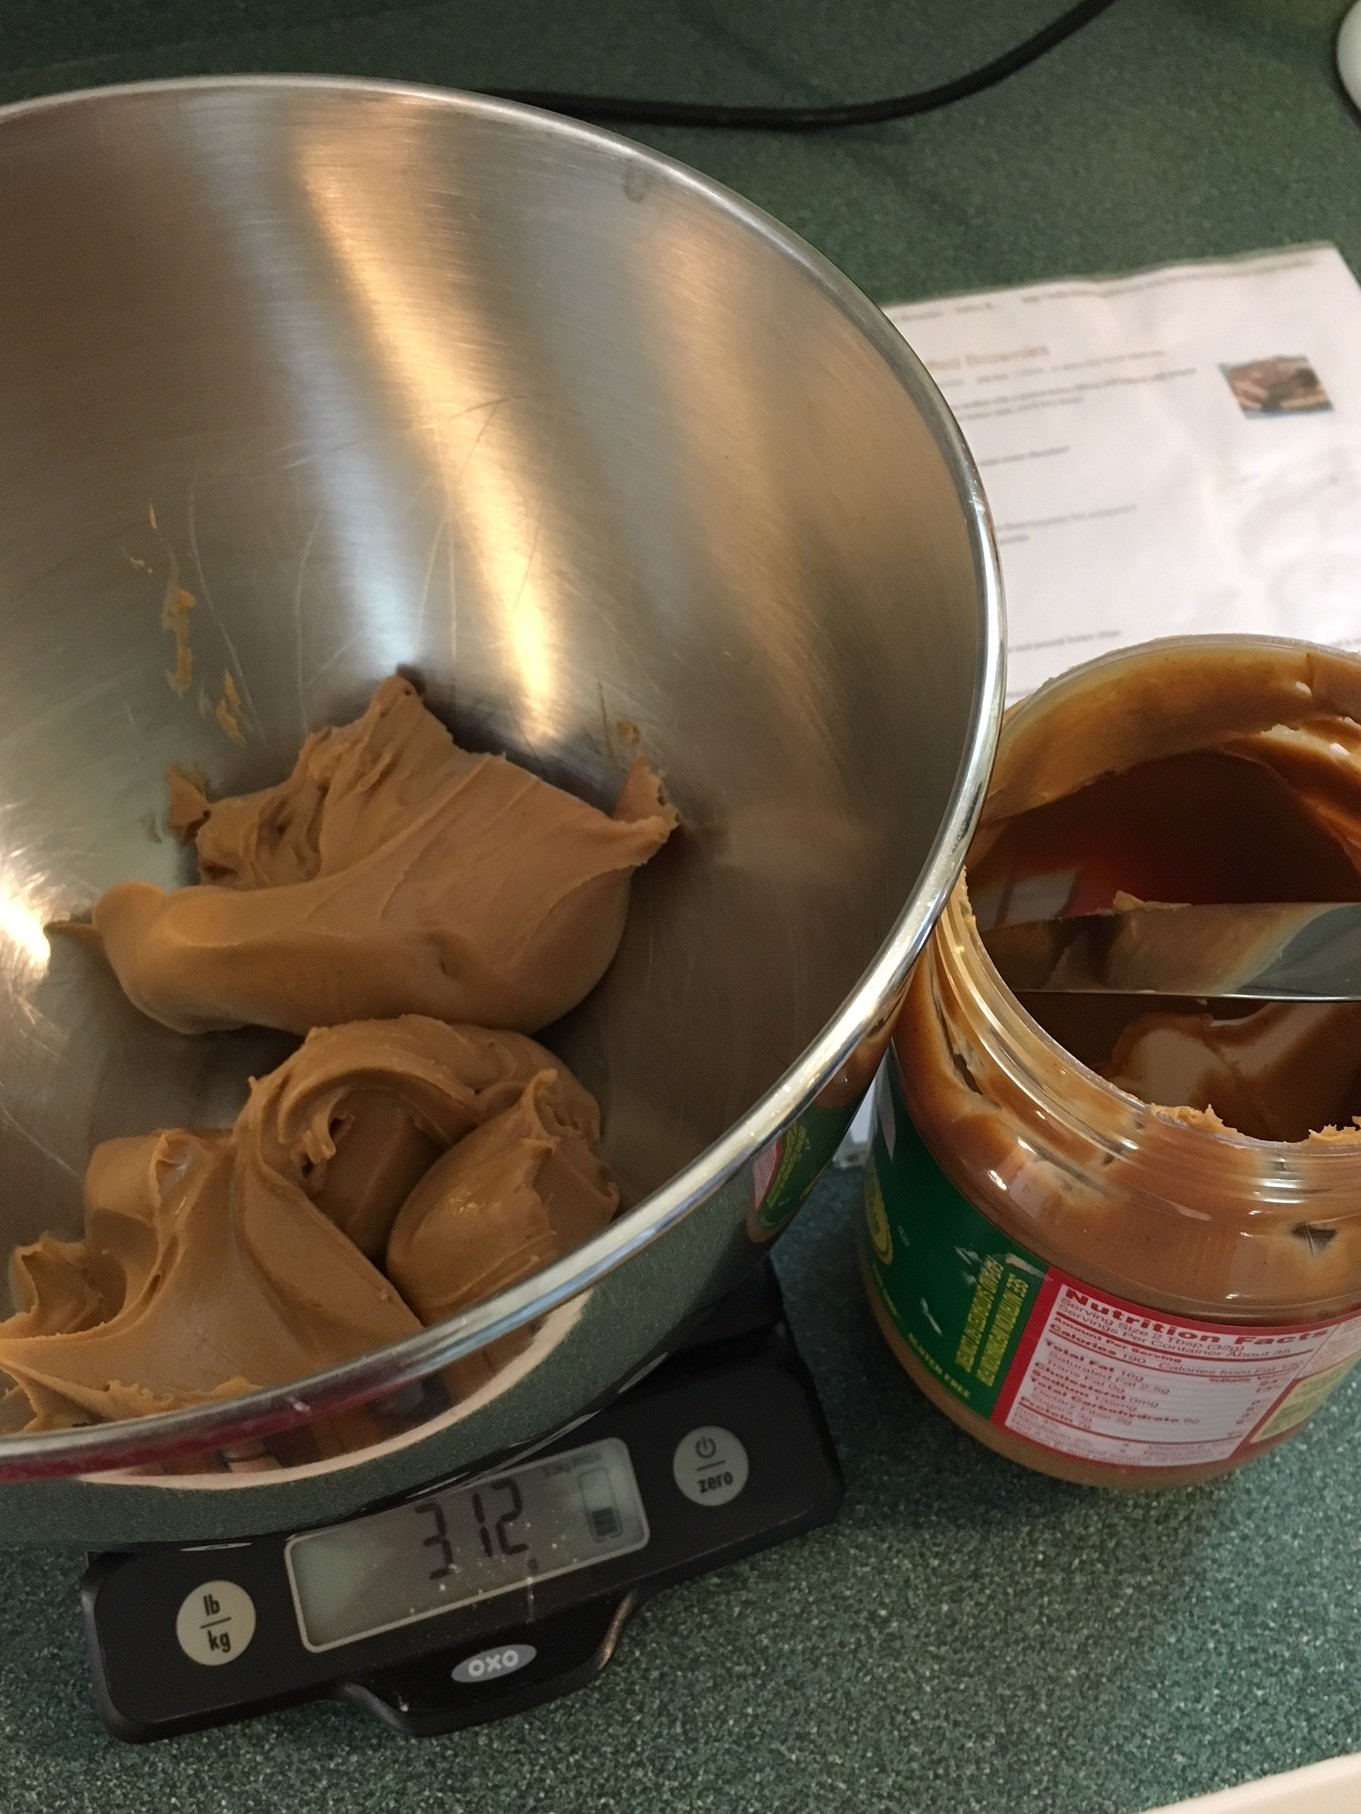 Measuring peanut butter using scales